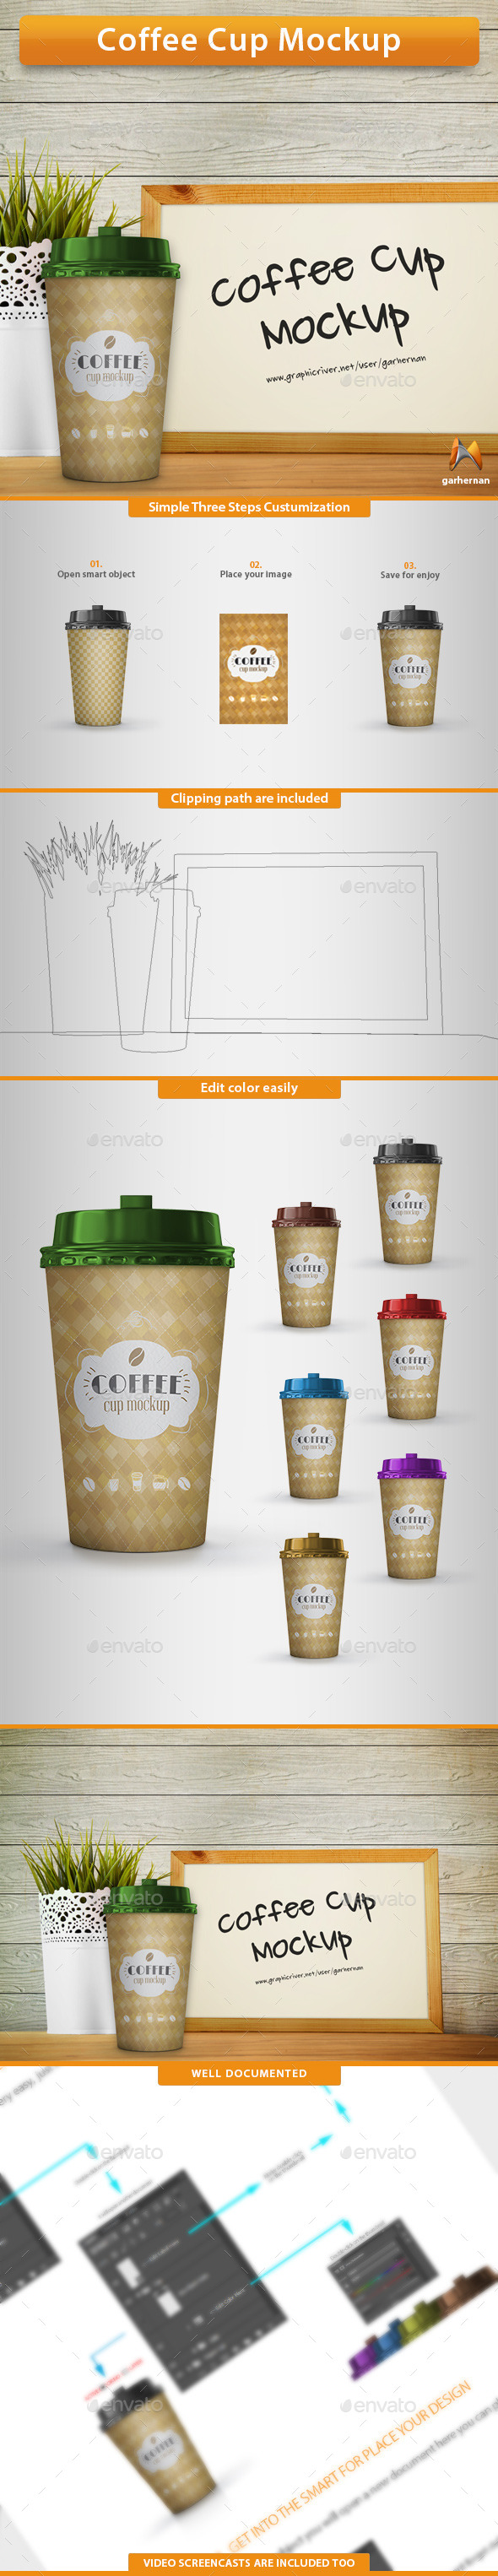 GraphicRiver Coffee Cup Mockup 10702447